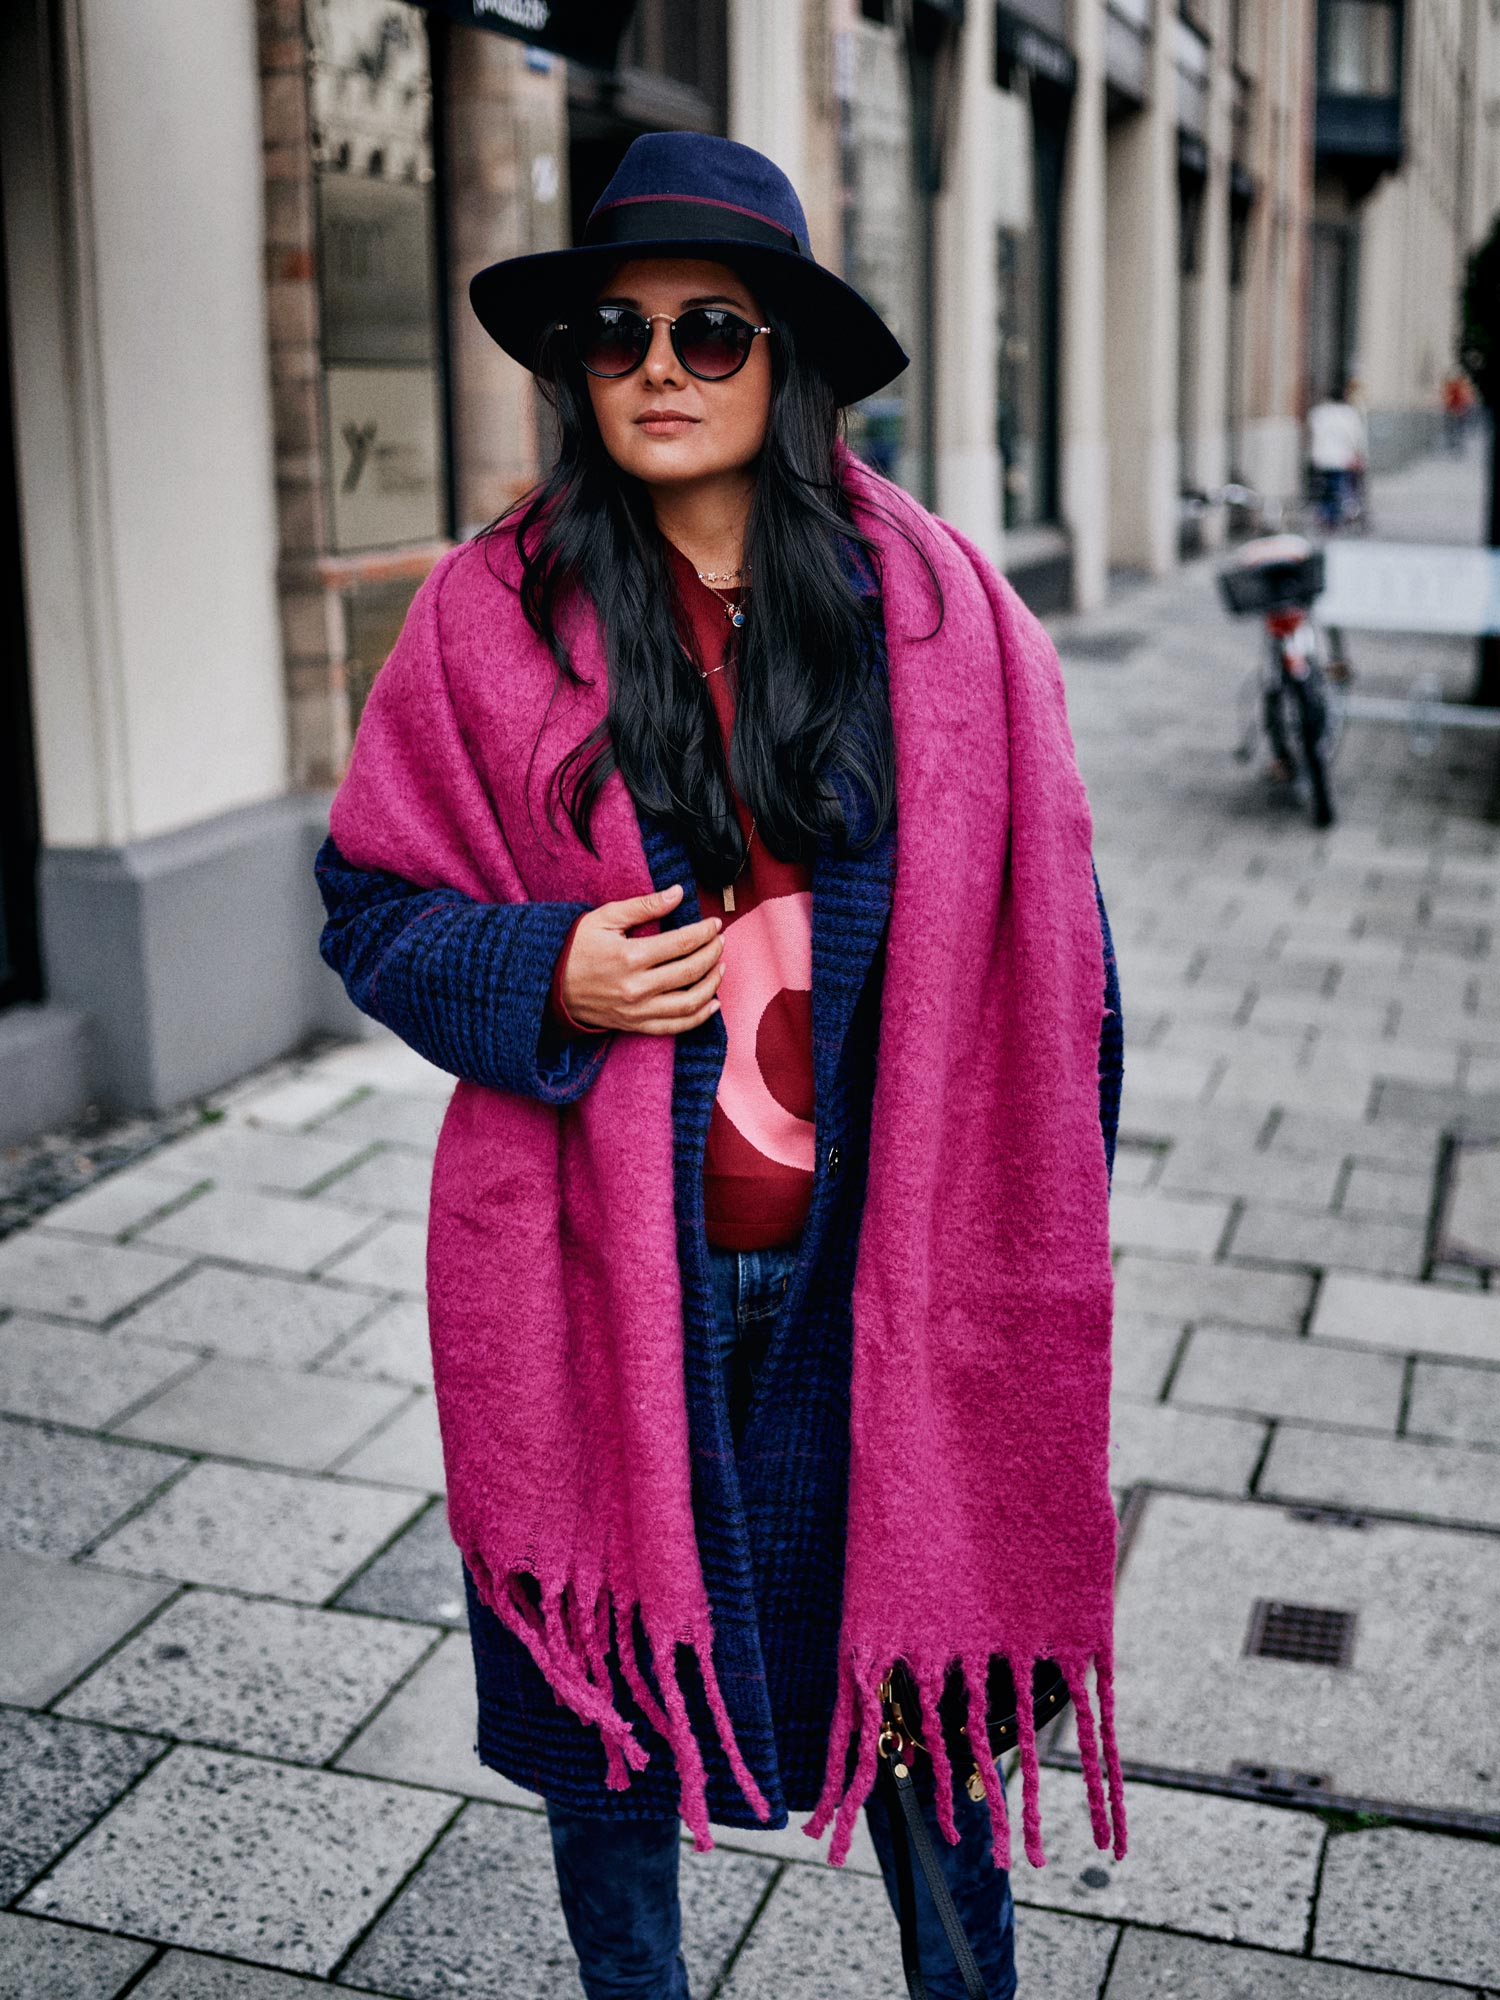 fashion-blogger-aus-muenchen-fashionblogger-lifestyleblogger-beautyblogger-fashion-blogger-modeblogger-modeblog-munich-blog-muenchen-das-traegt-die-frau-auf-dem-kopf-der-hut-trend